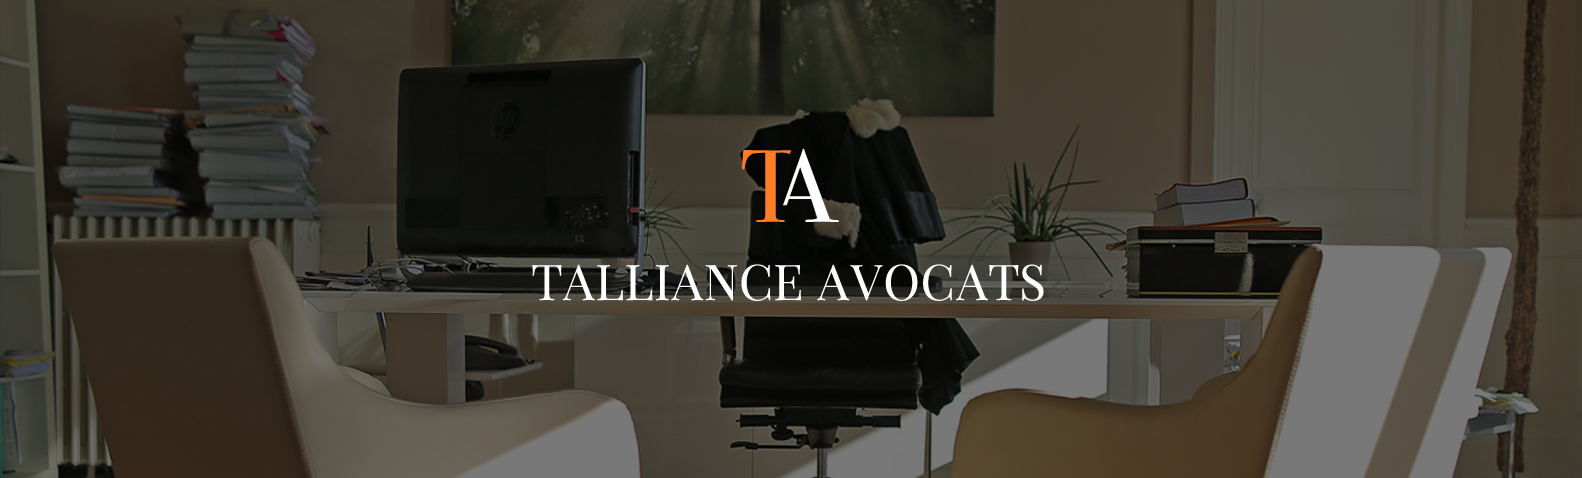 header-talliance